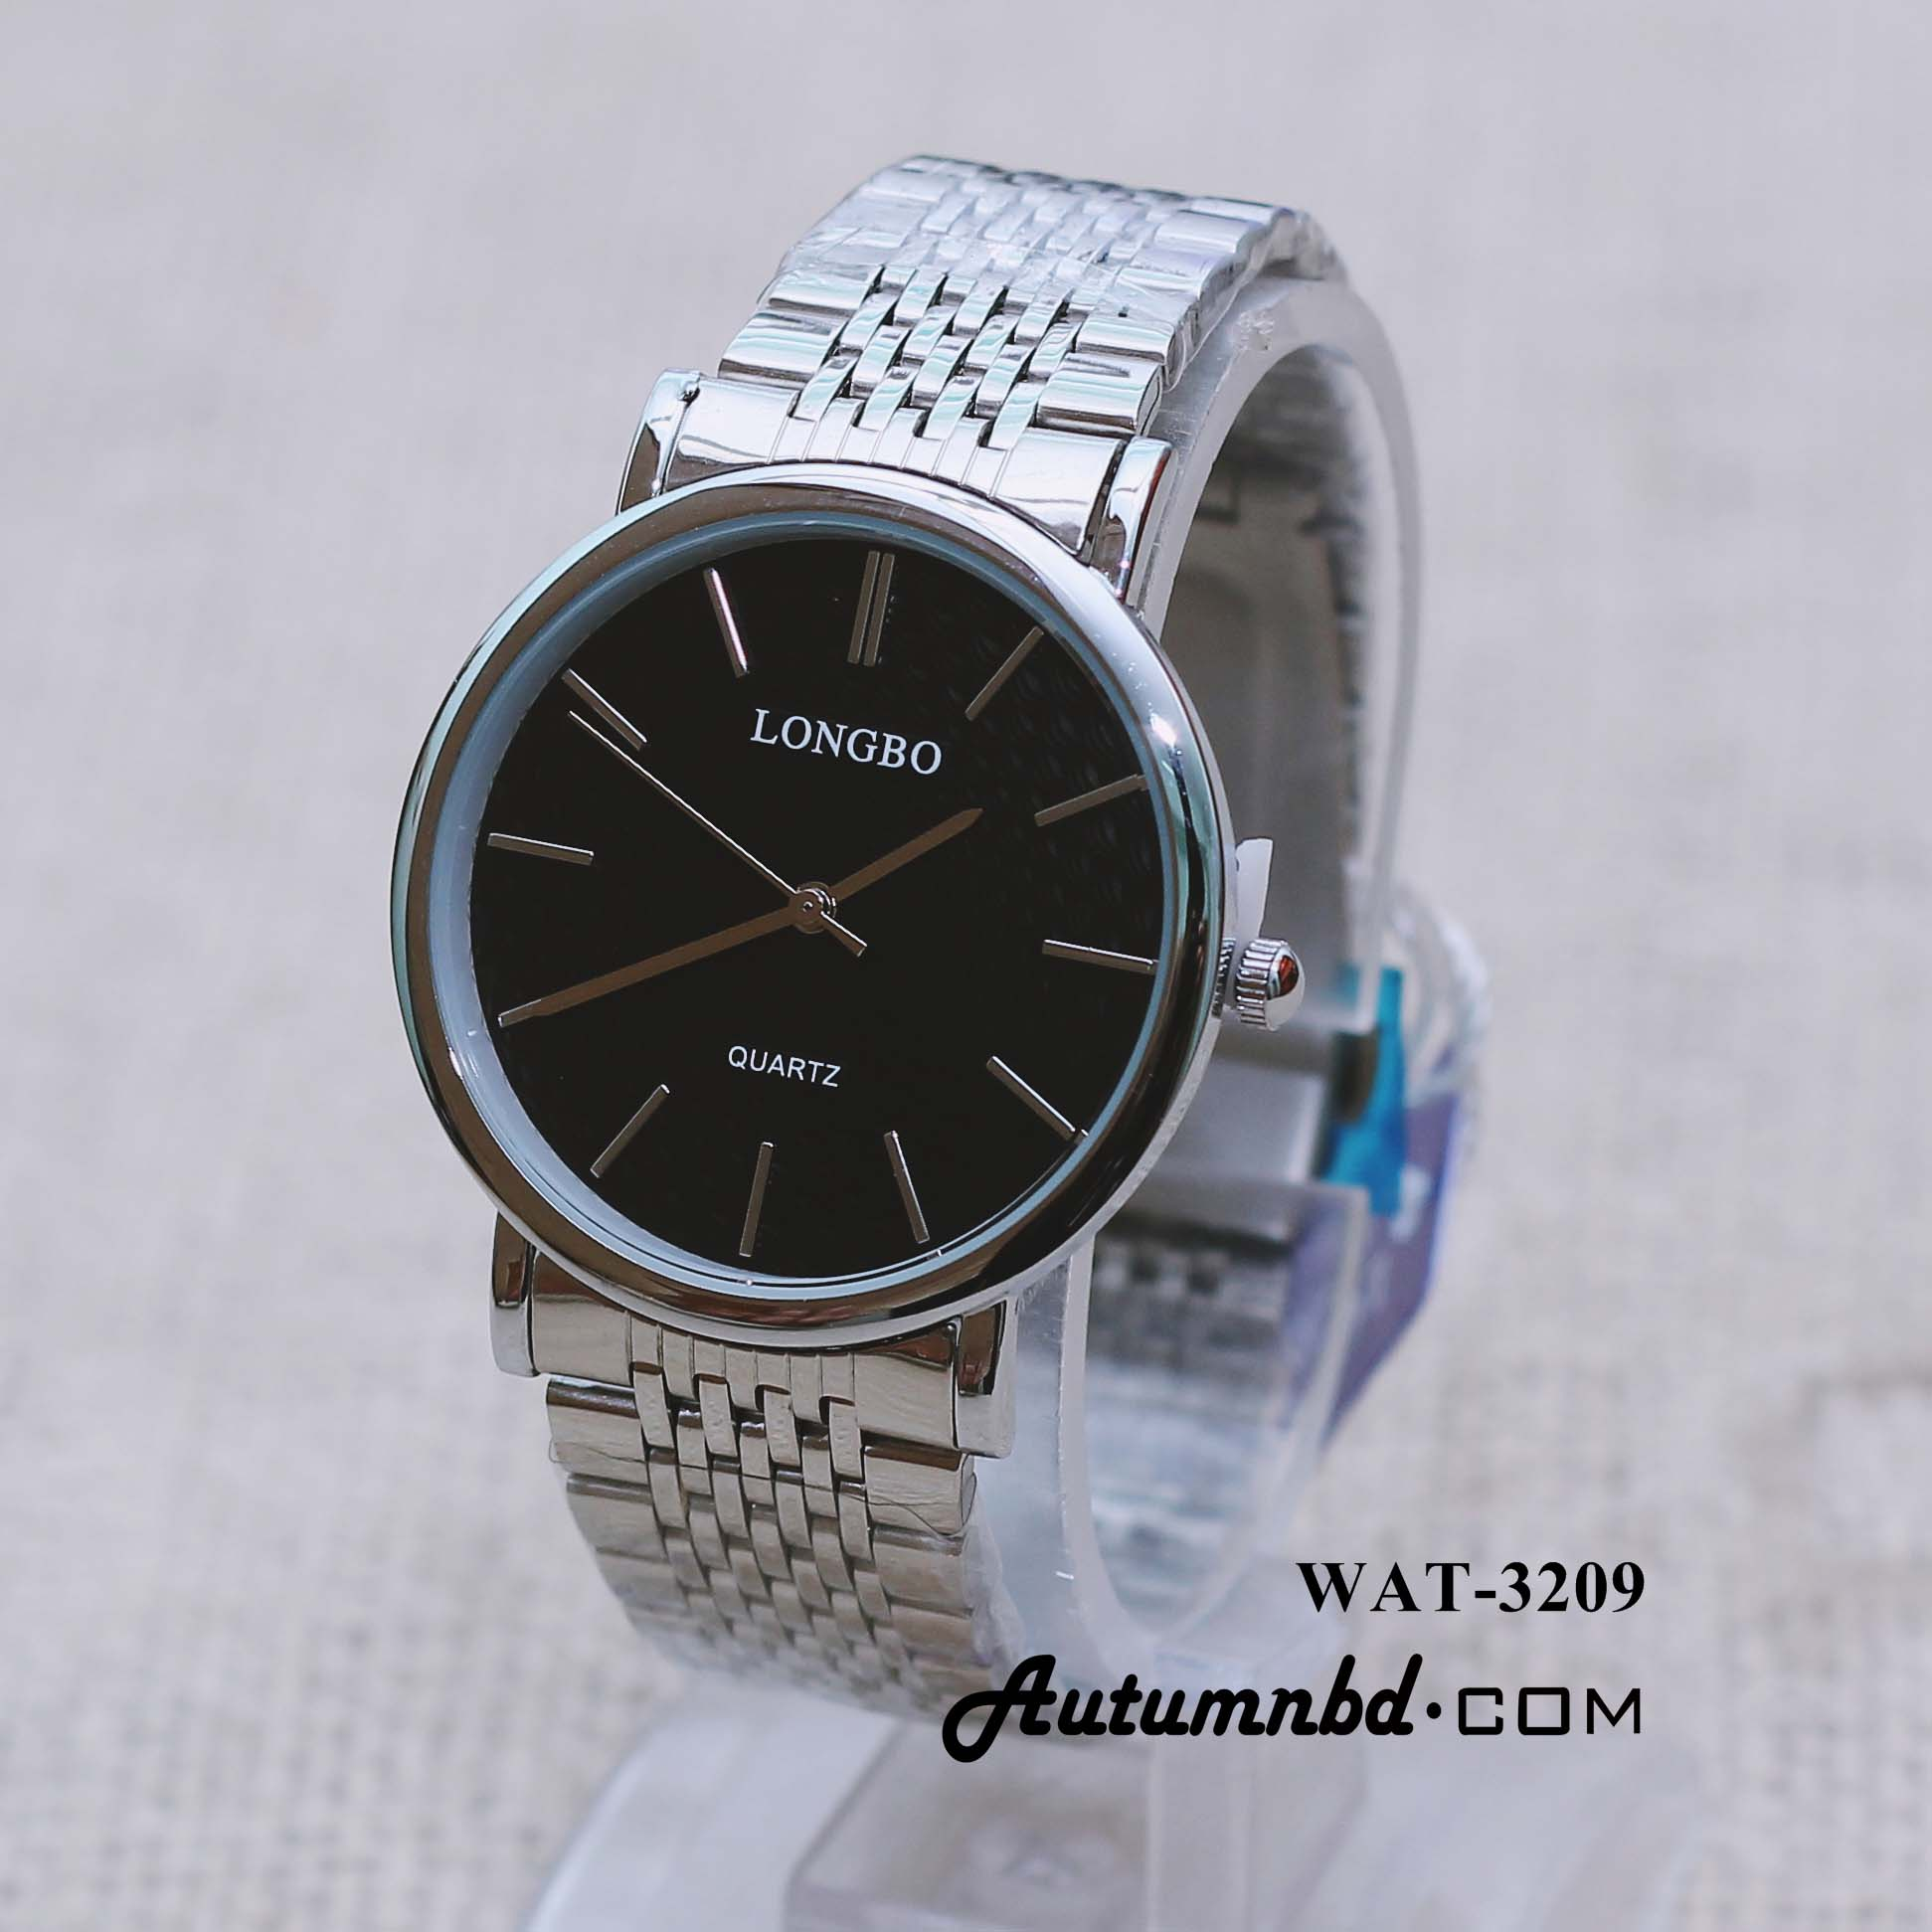 LONGBO WATCH (WAT-3209)